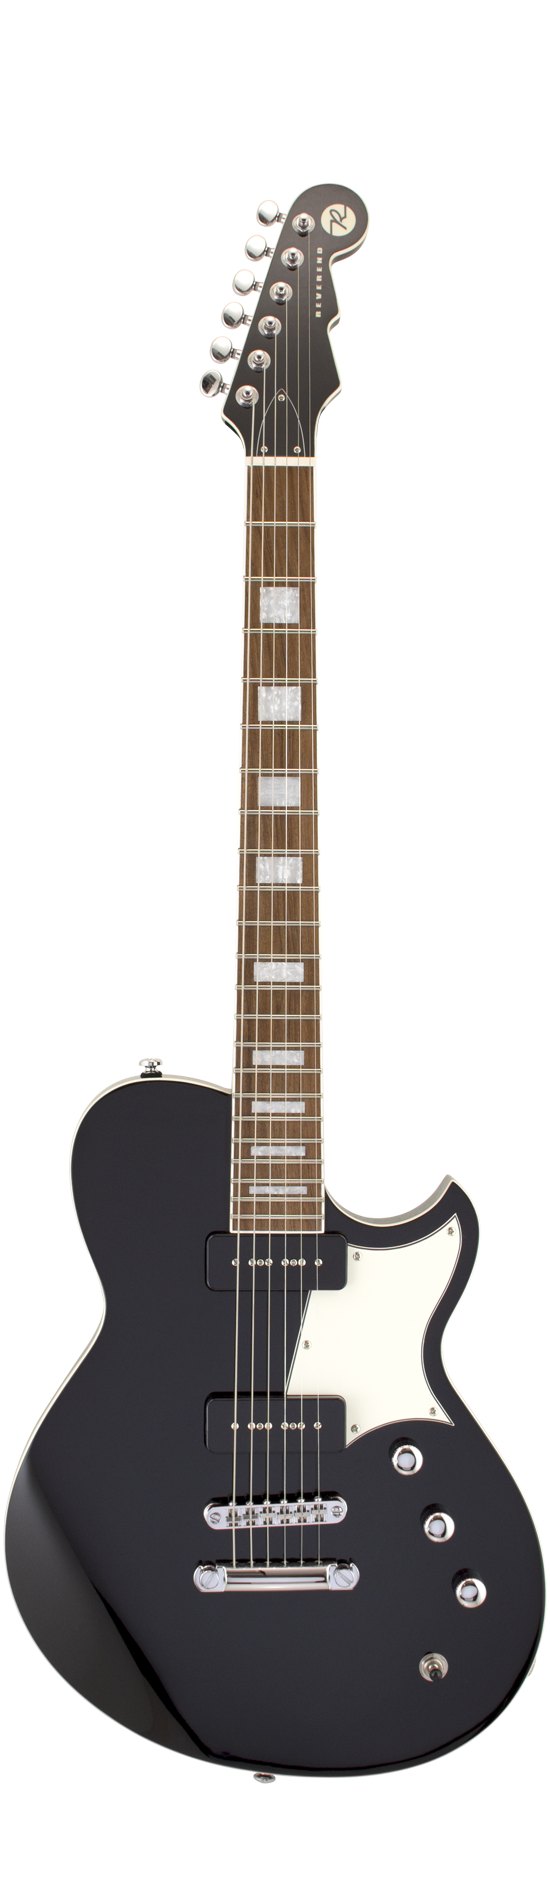 Reverend Guitars Contender 290 Midnight Black